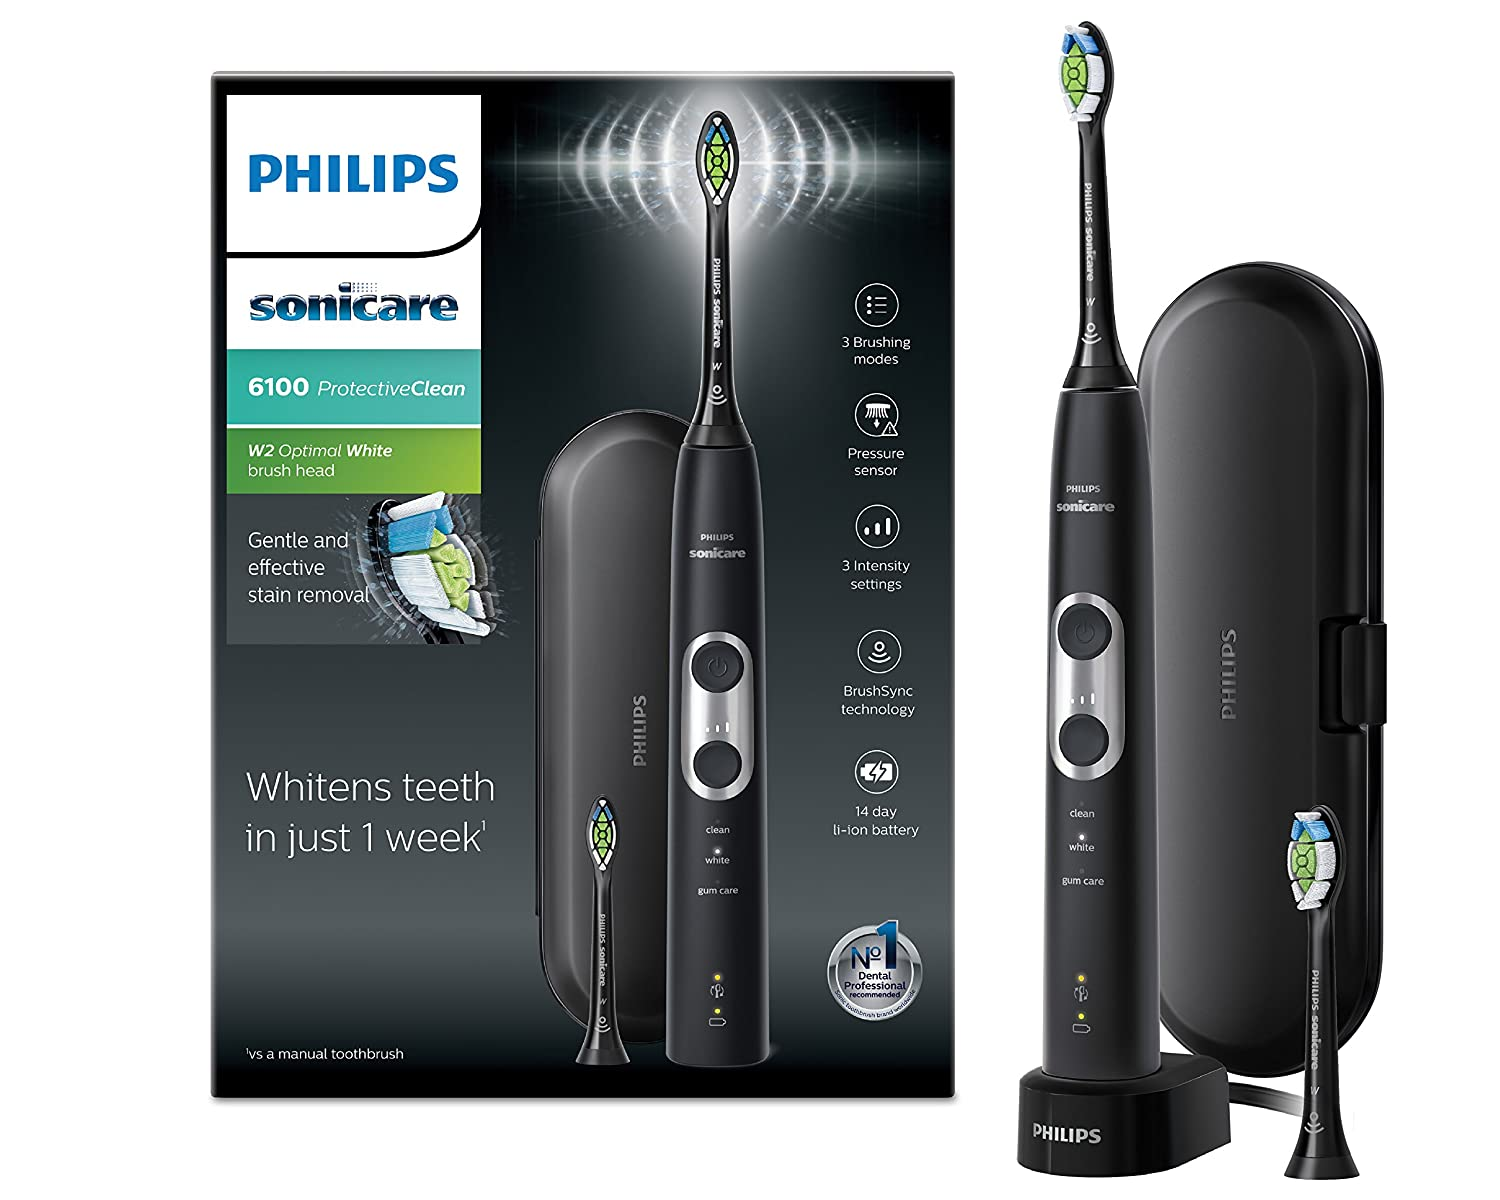 Philips Sonicare 6100 Electric Toothbrush Top Sells